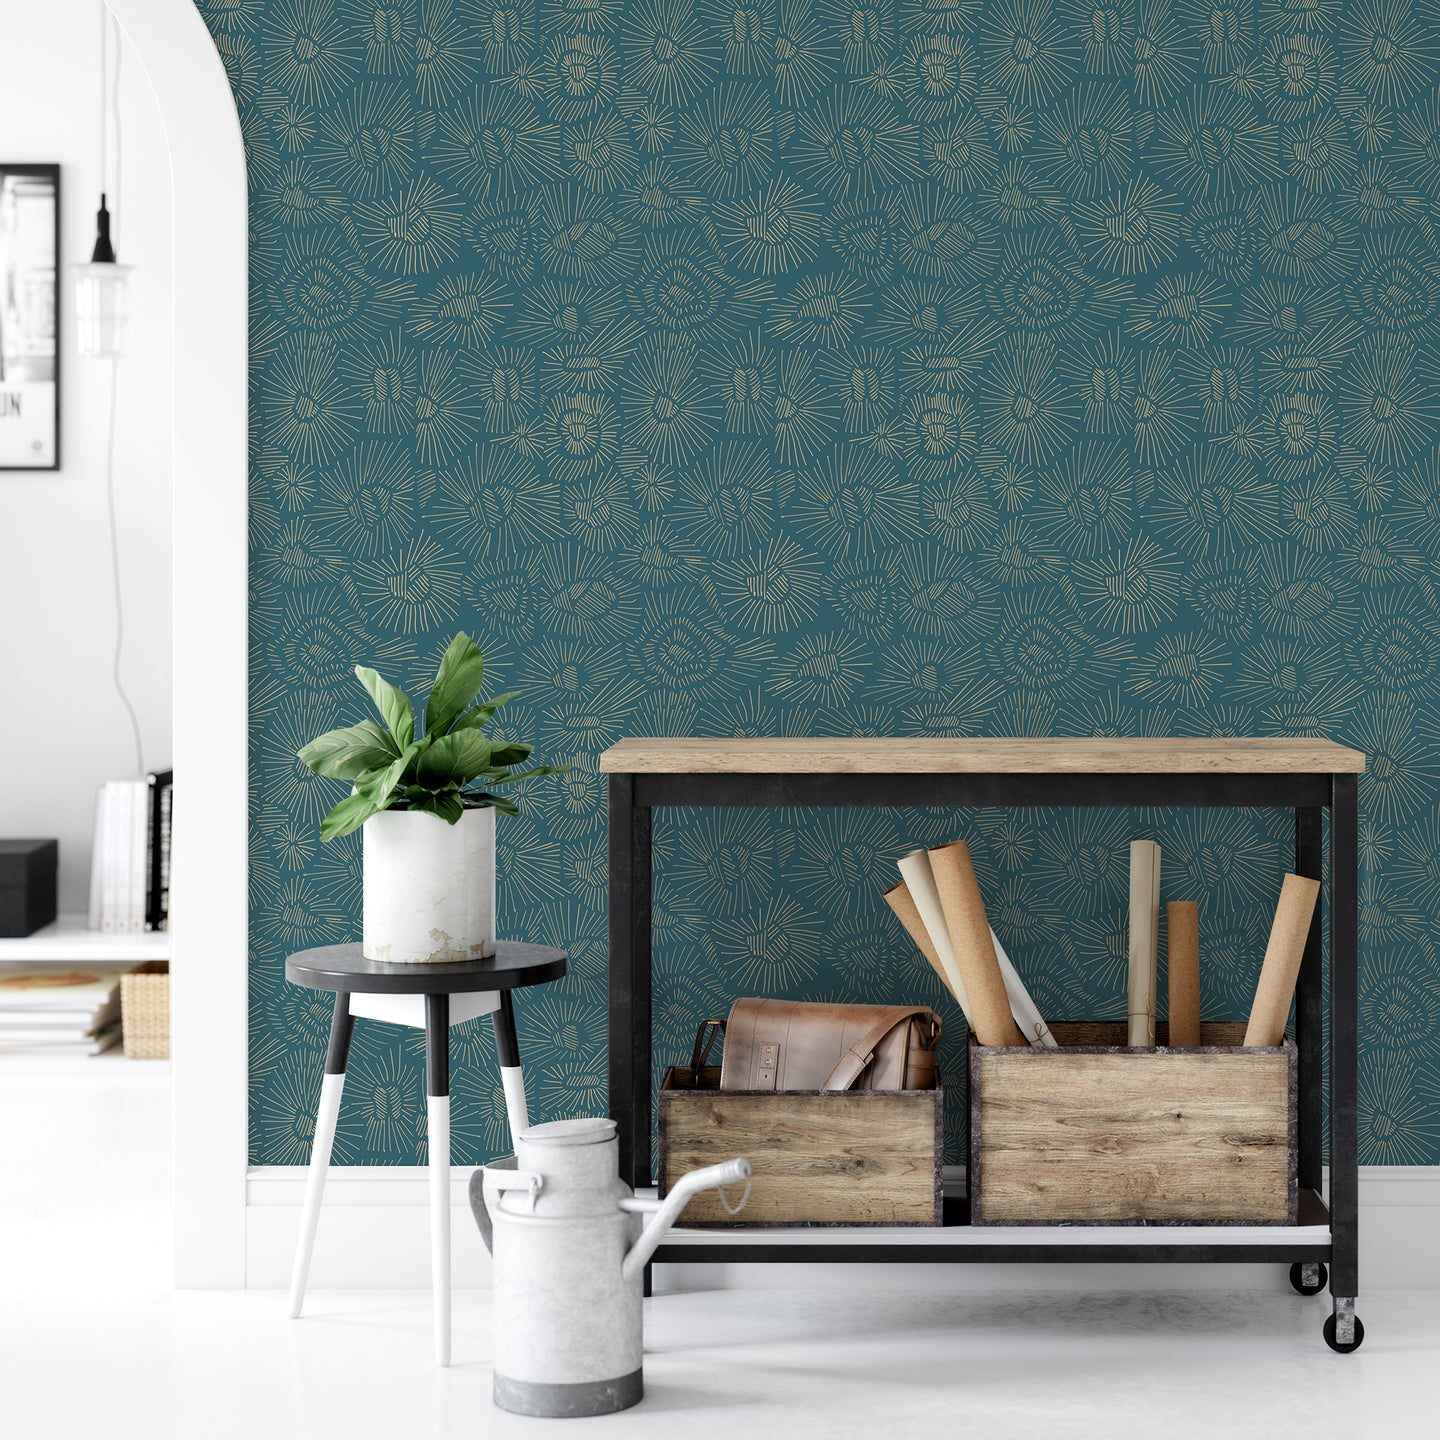 Abstract Teal Peel And Stick Wallpaper - The Wallberry